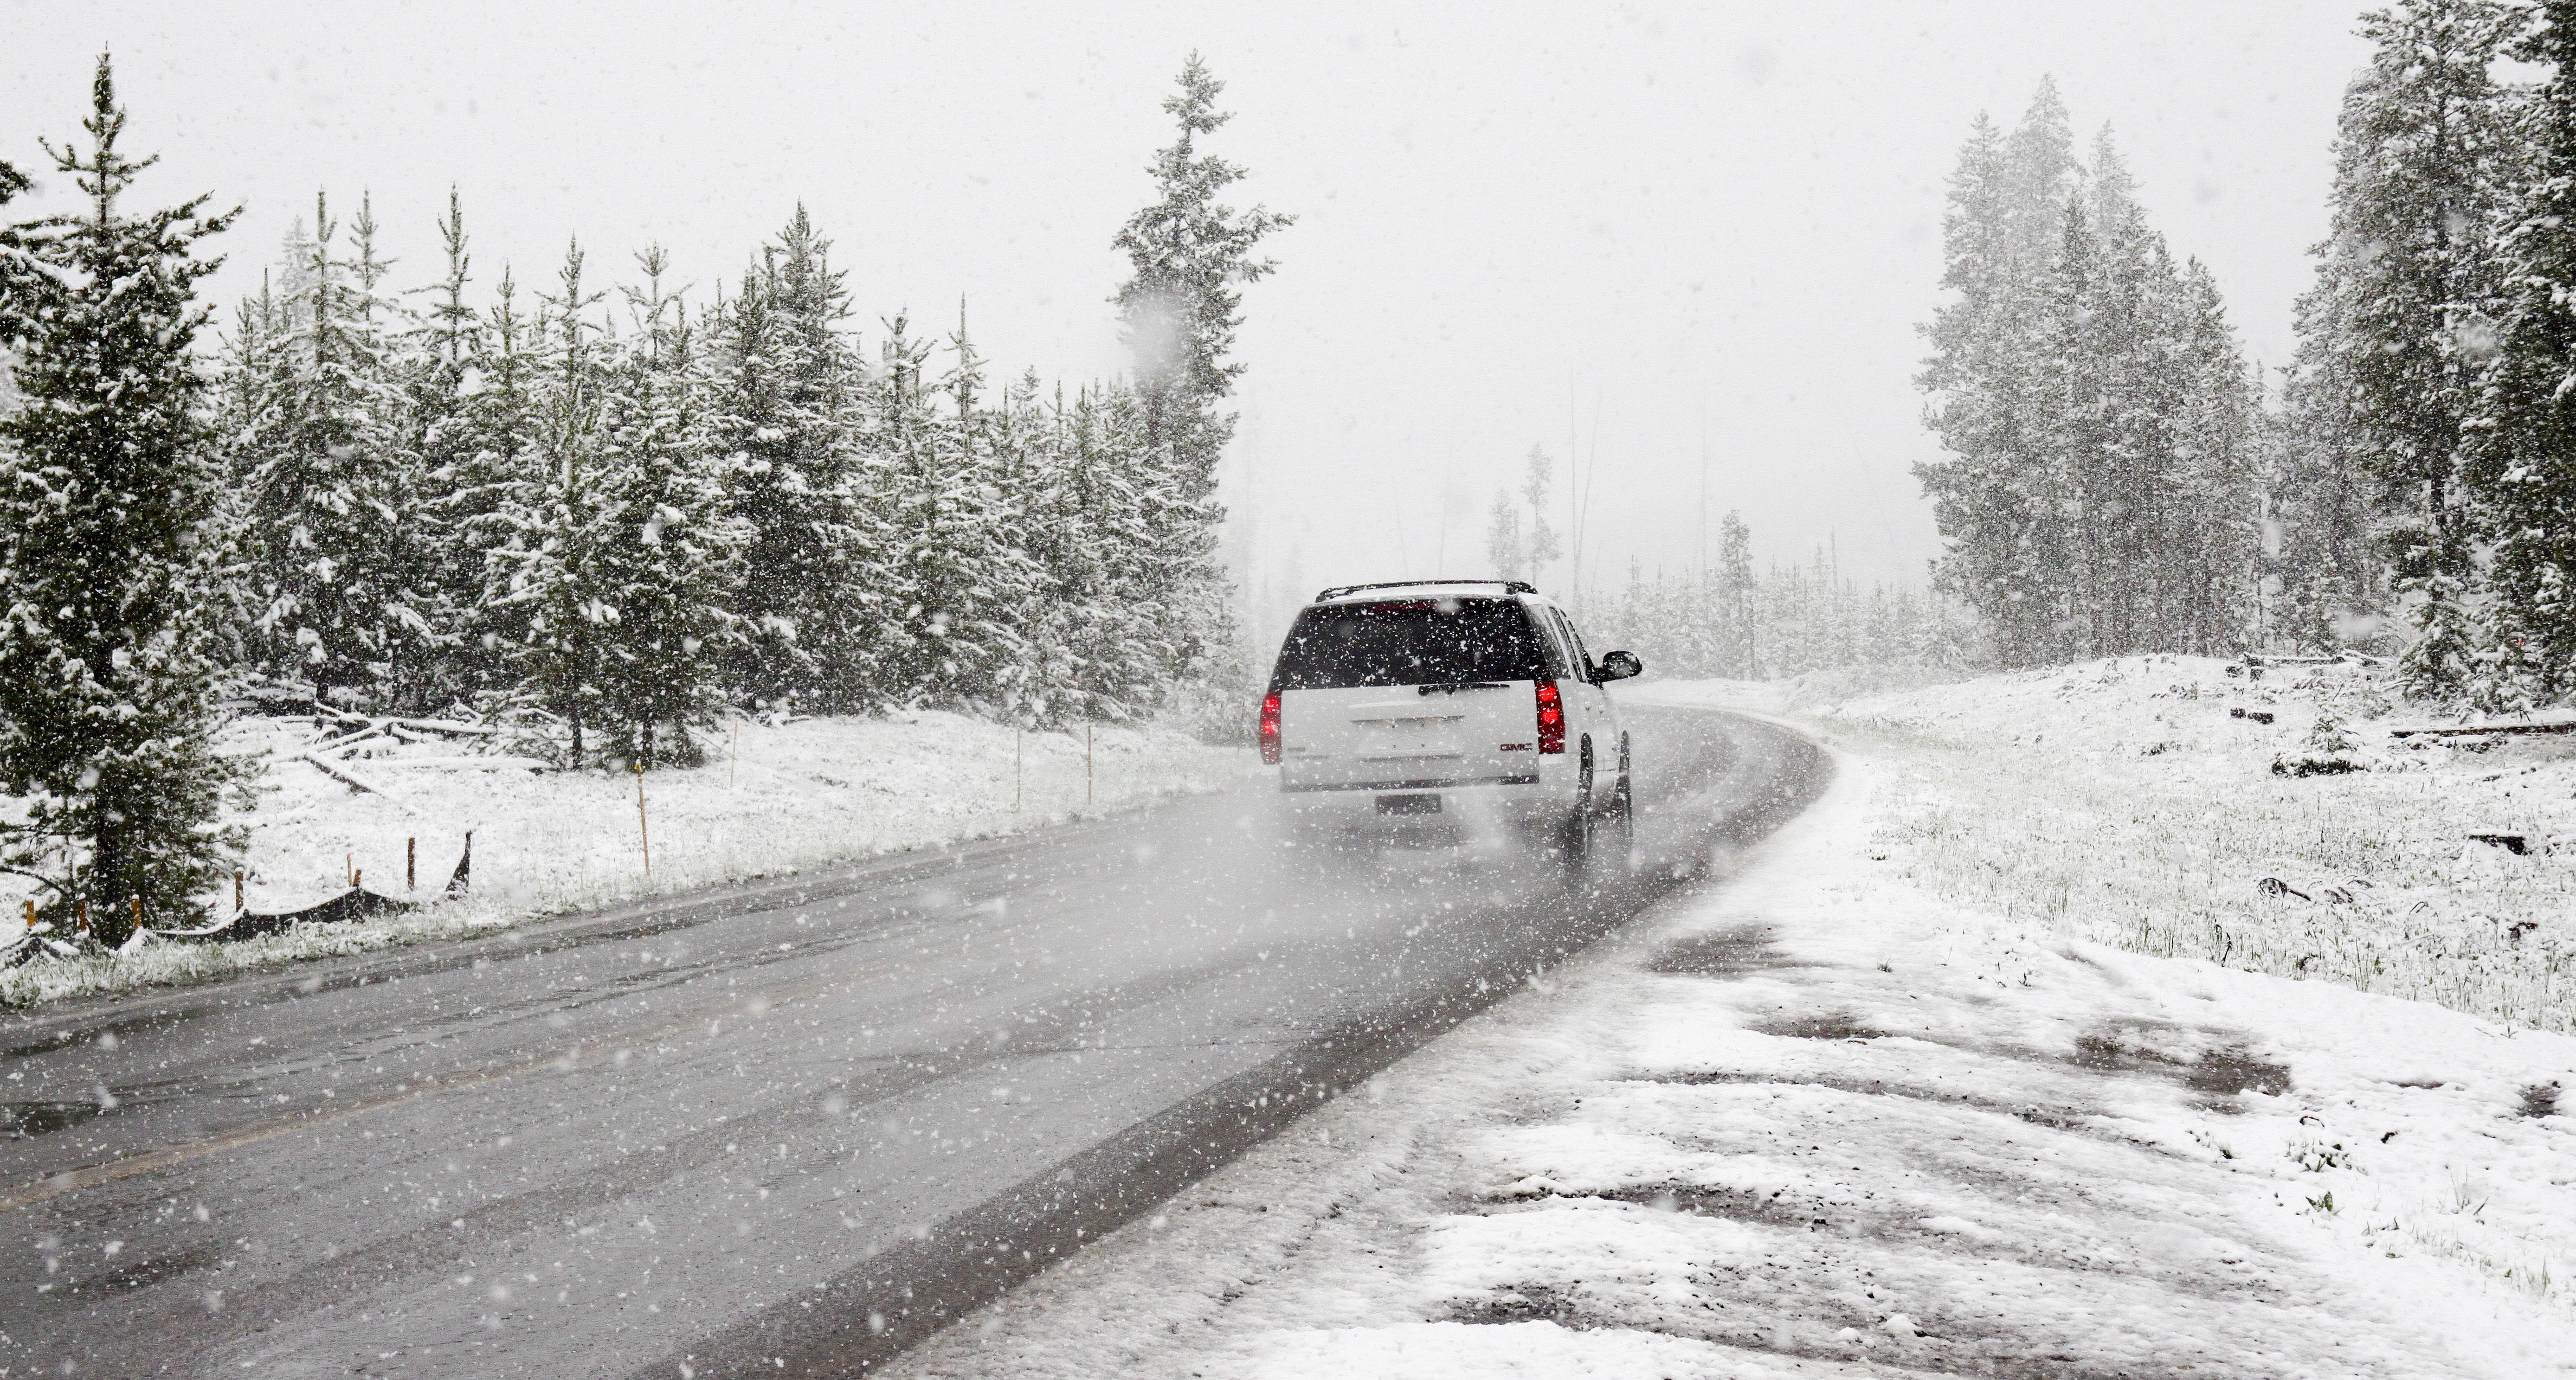 Safety During Winter Driving